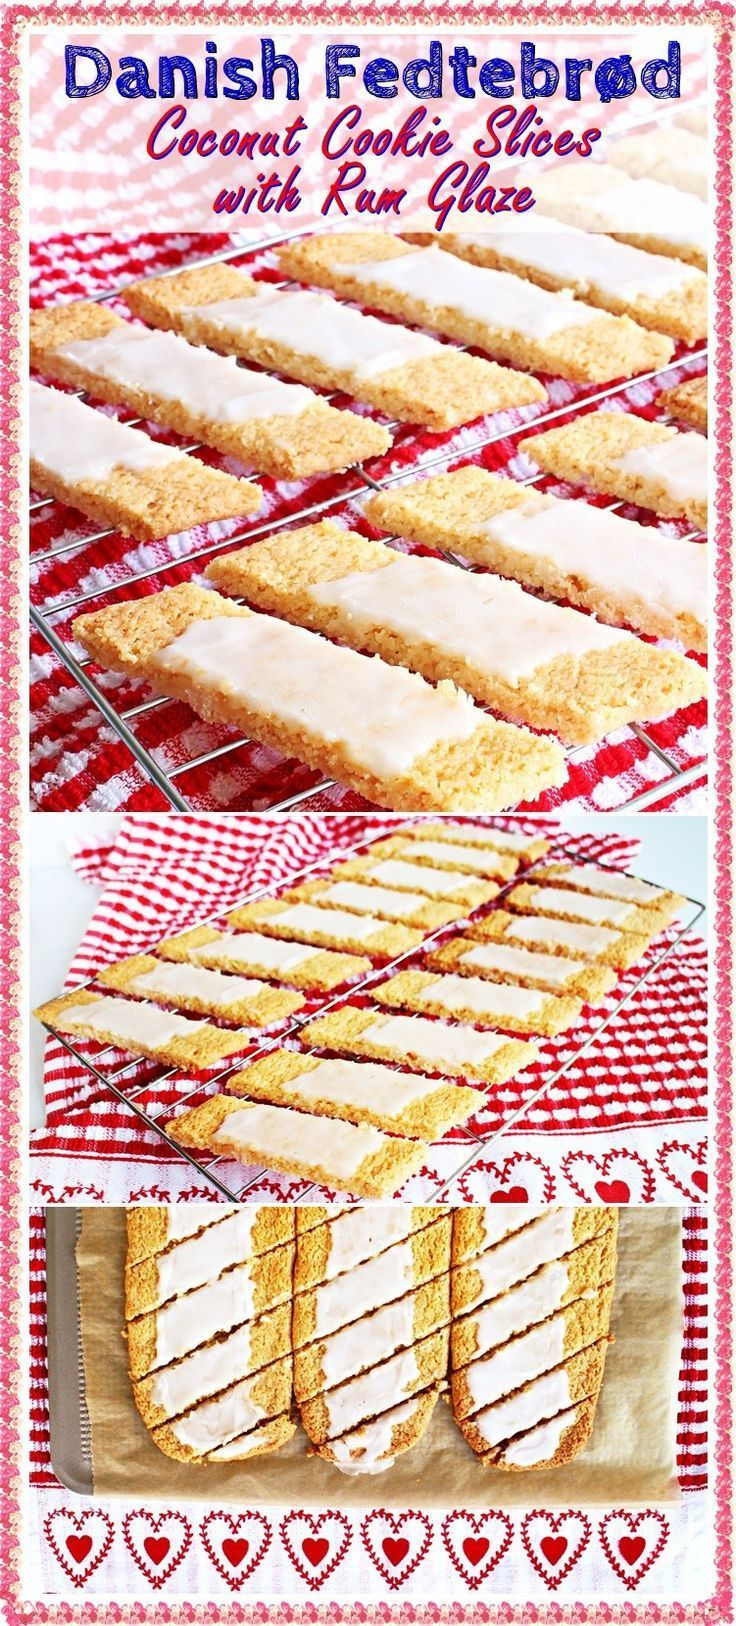 Danish fedtebrd coconut cookie slices with rum glaze recipe danish fedtebrd coconut cookie slices with rum glaze coconut recipesbaking recipescookie recipesdessert recipeseasy forumfinder Gallery